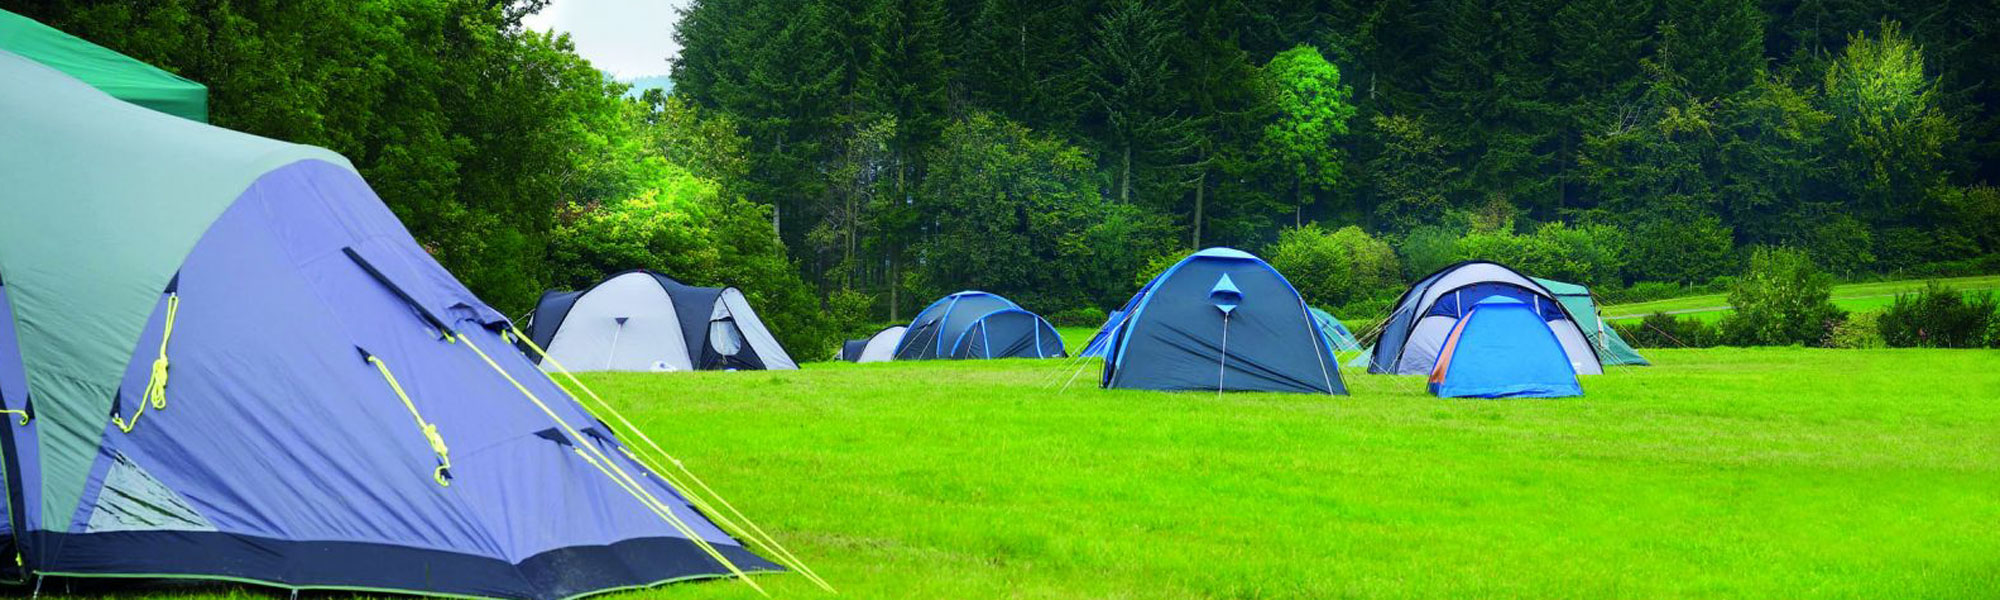 Camping, Glamping and Adventure Activities in Roscommon